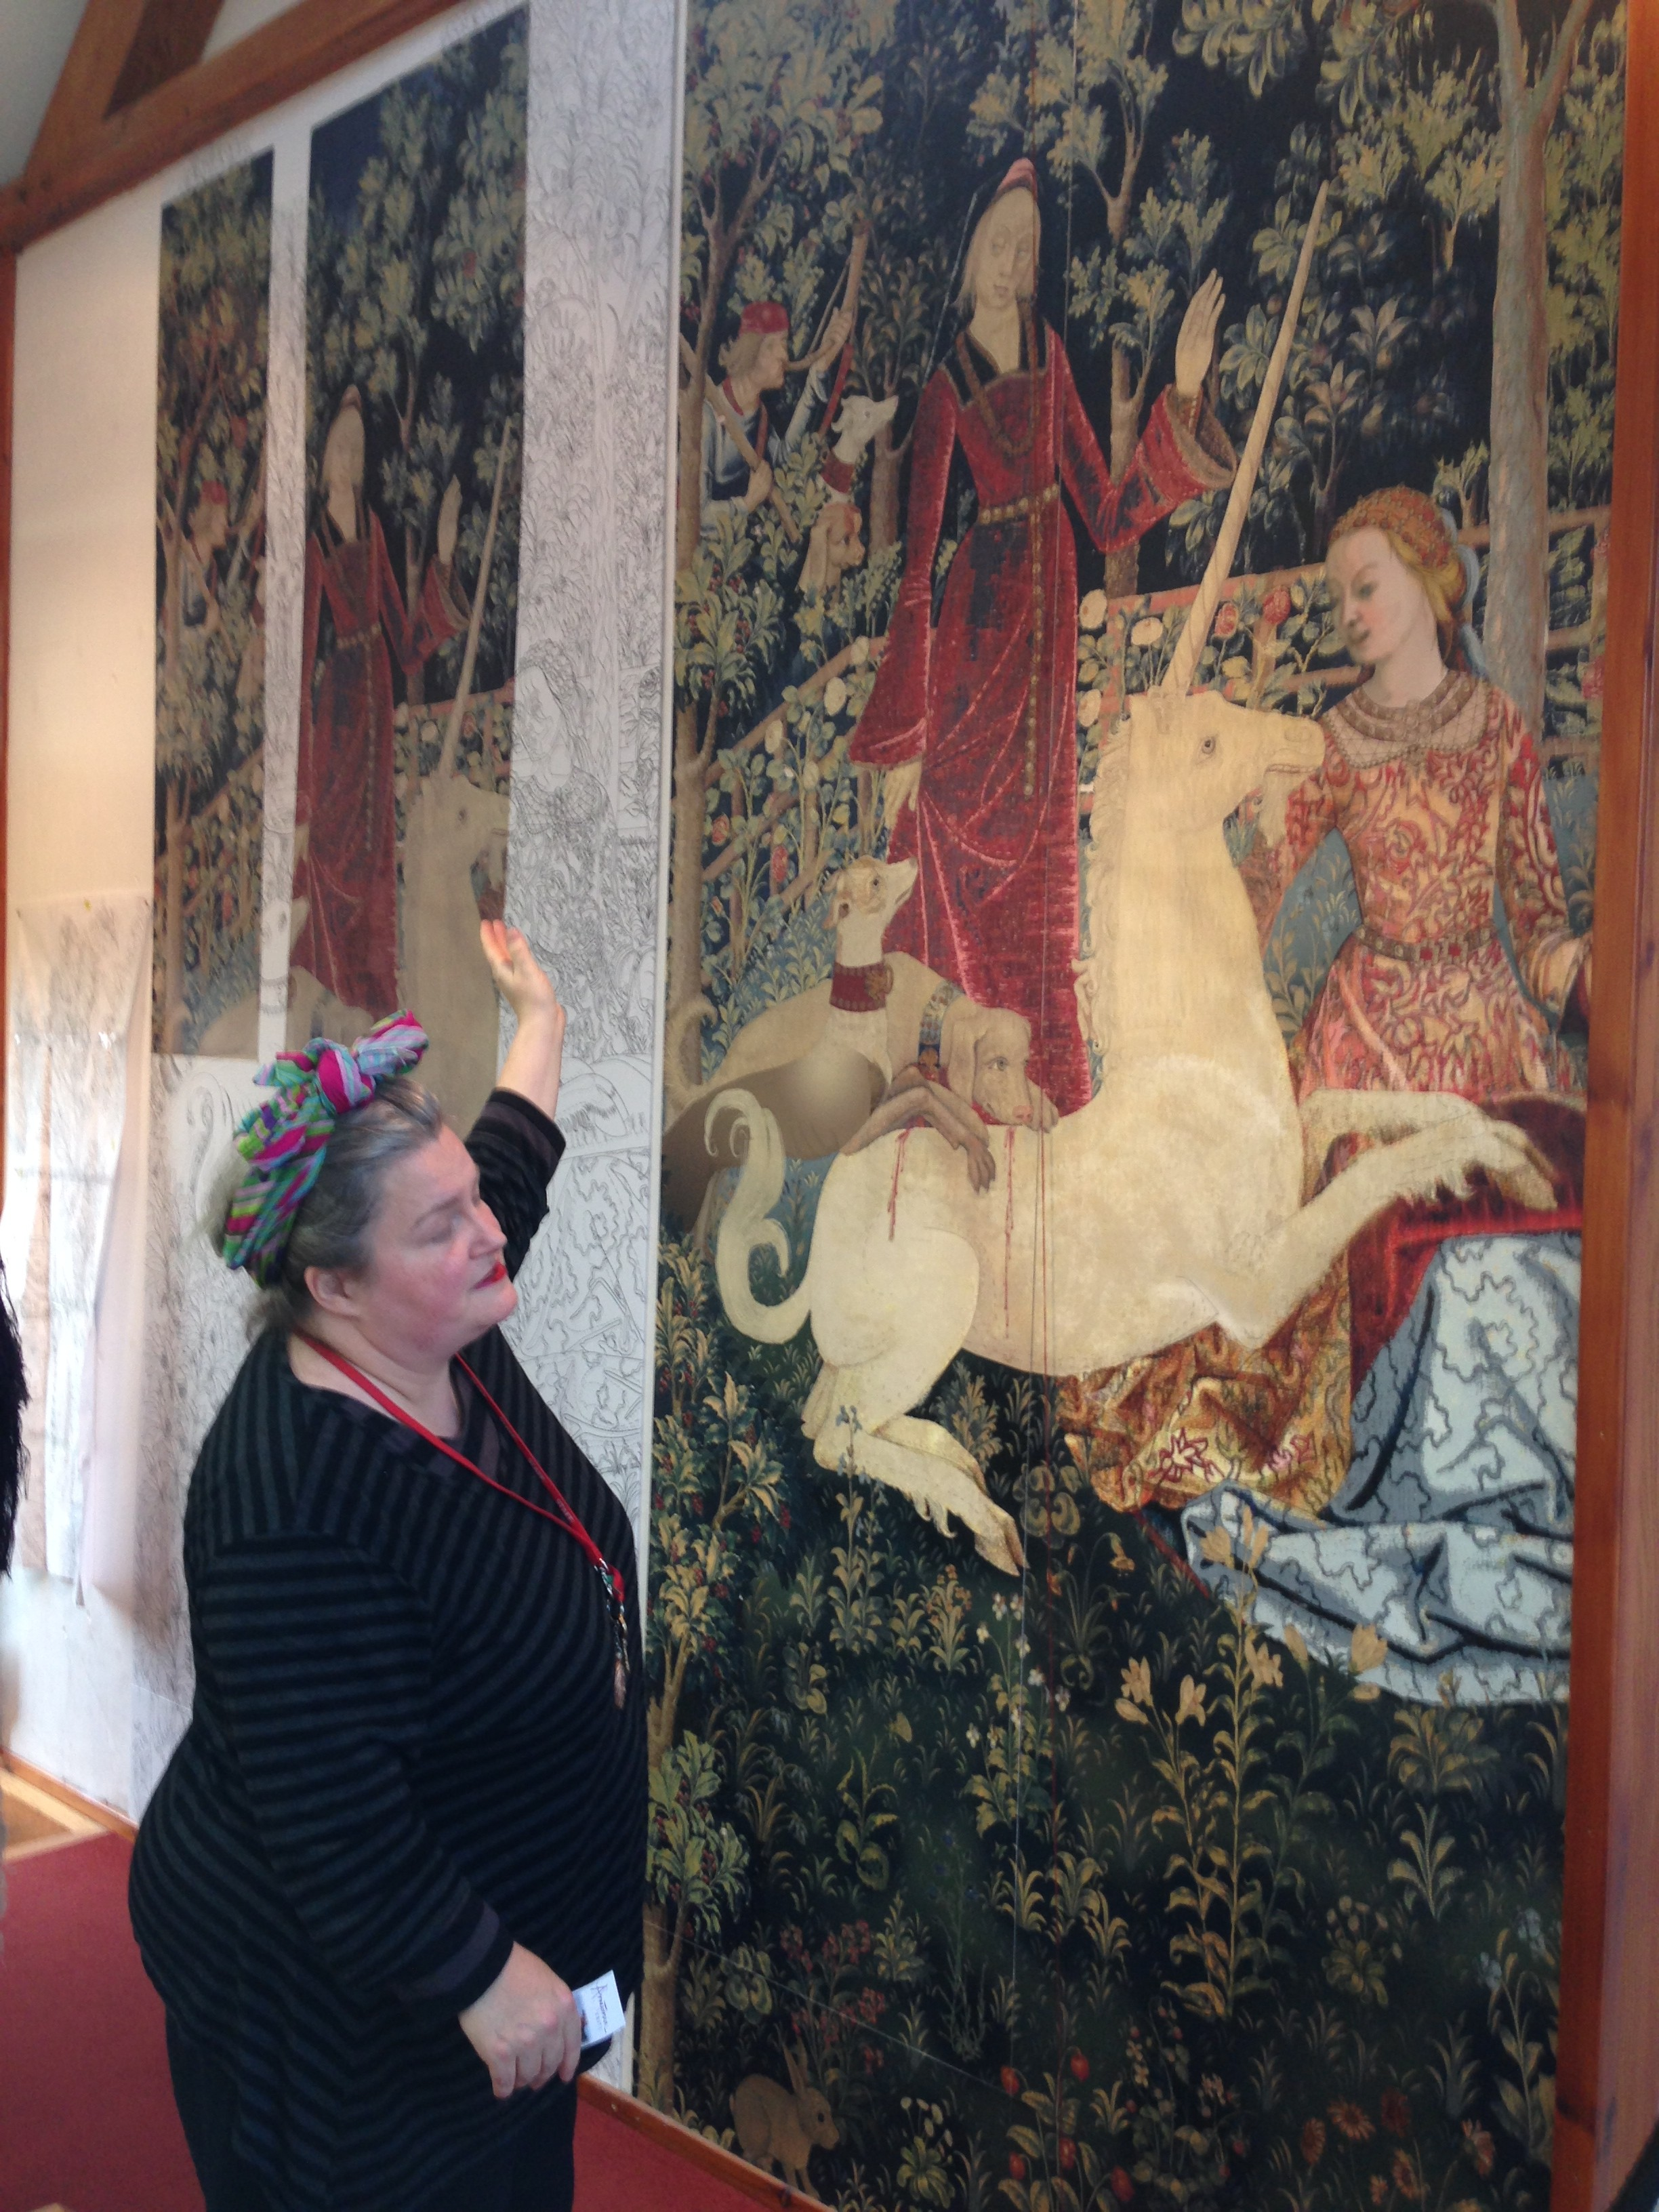 The two fragments that exist are hung behind the weaver, together with the drawing of what experts believe the full tapestry might have been.  The weaver is looking at the full drawing, that the weavers are producing as tapestry.